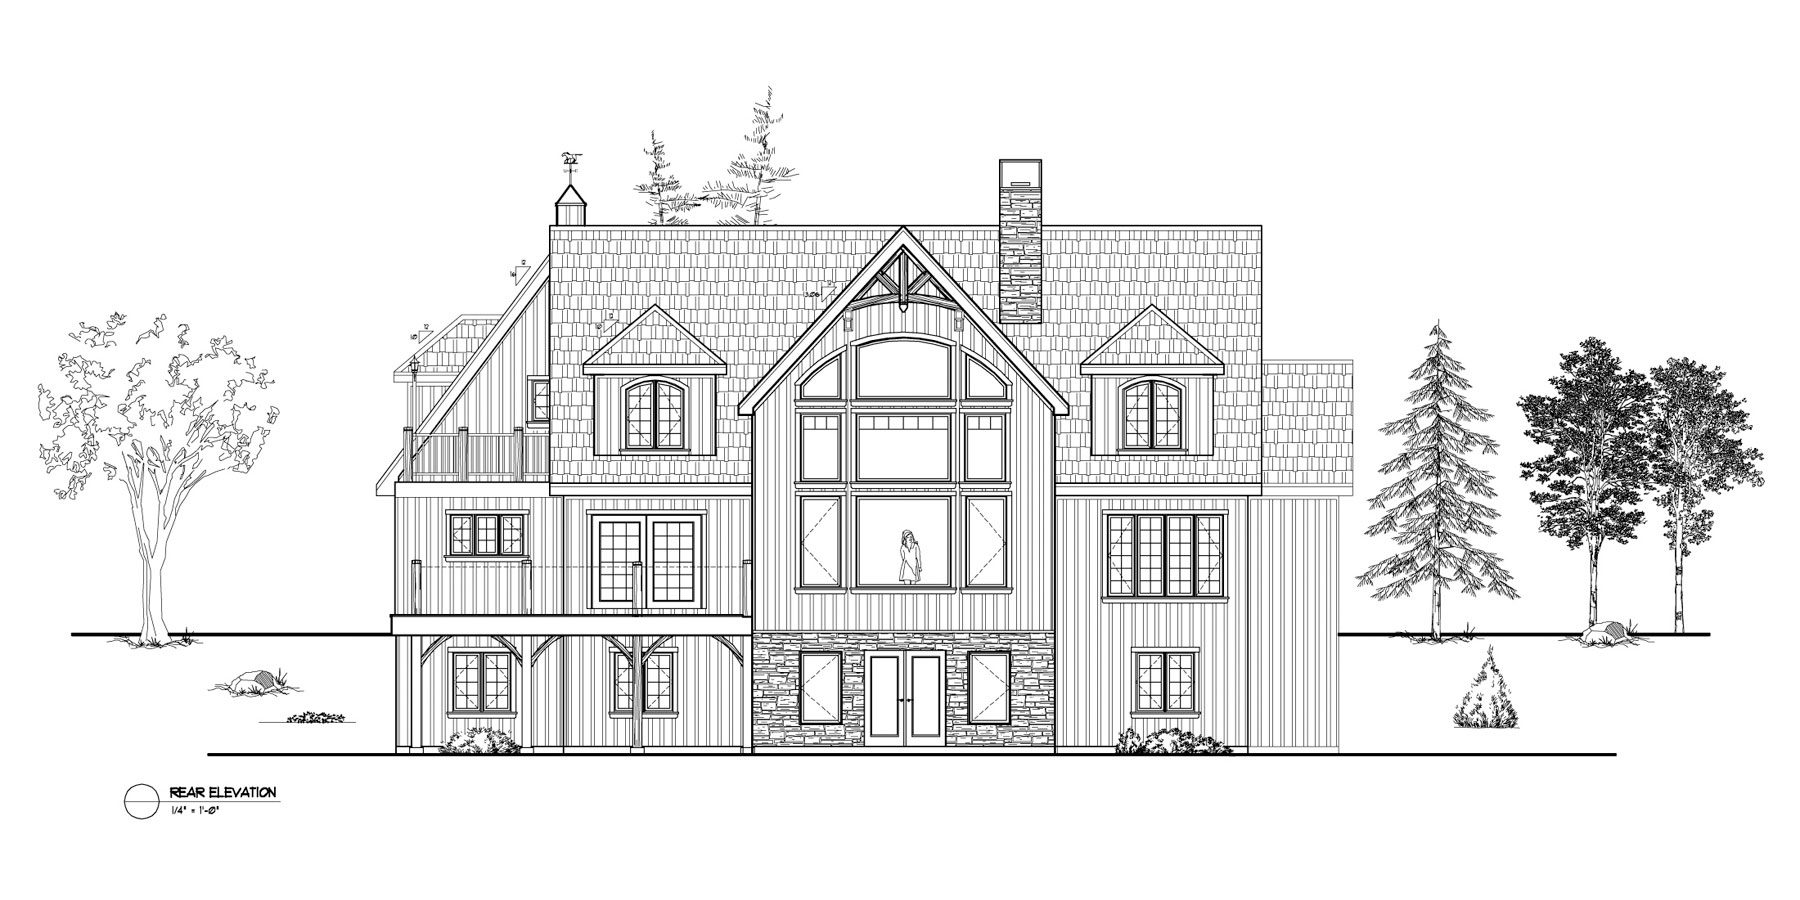 Normerica Timber Frames, House Plan, The Brennan 3576, Rear Elevation